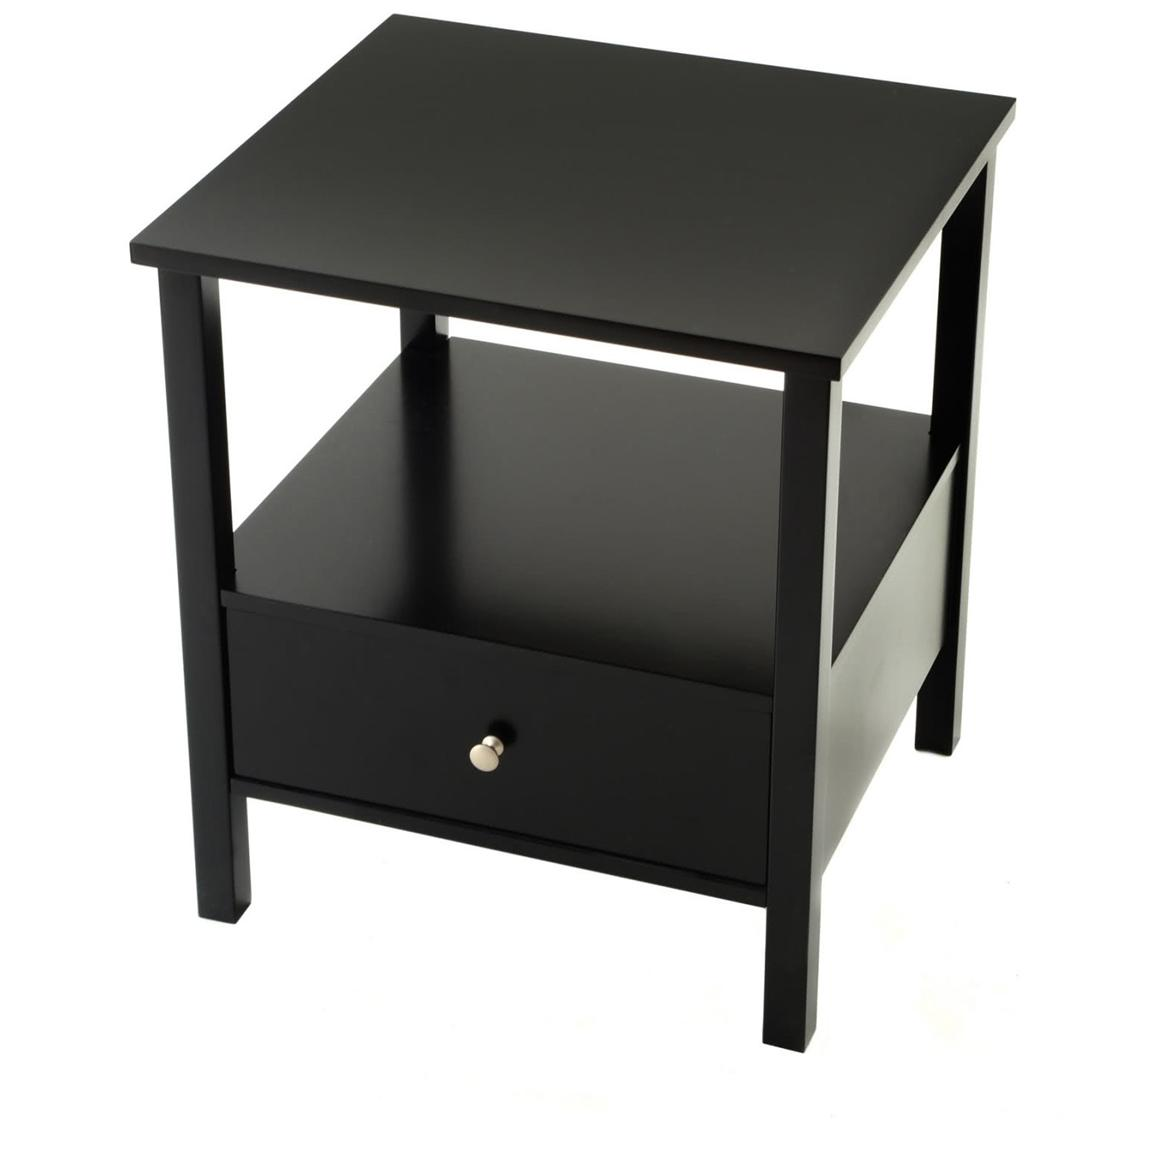 Wood End Table with Drawer, Black